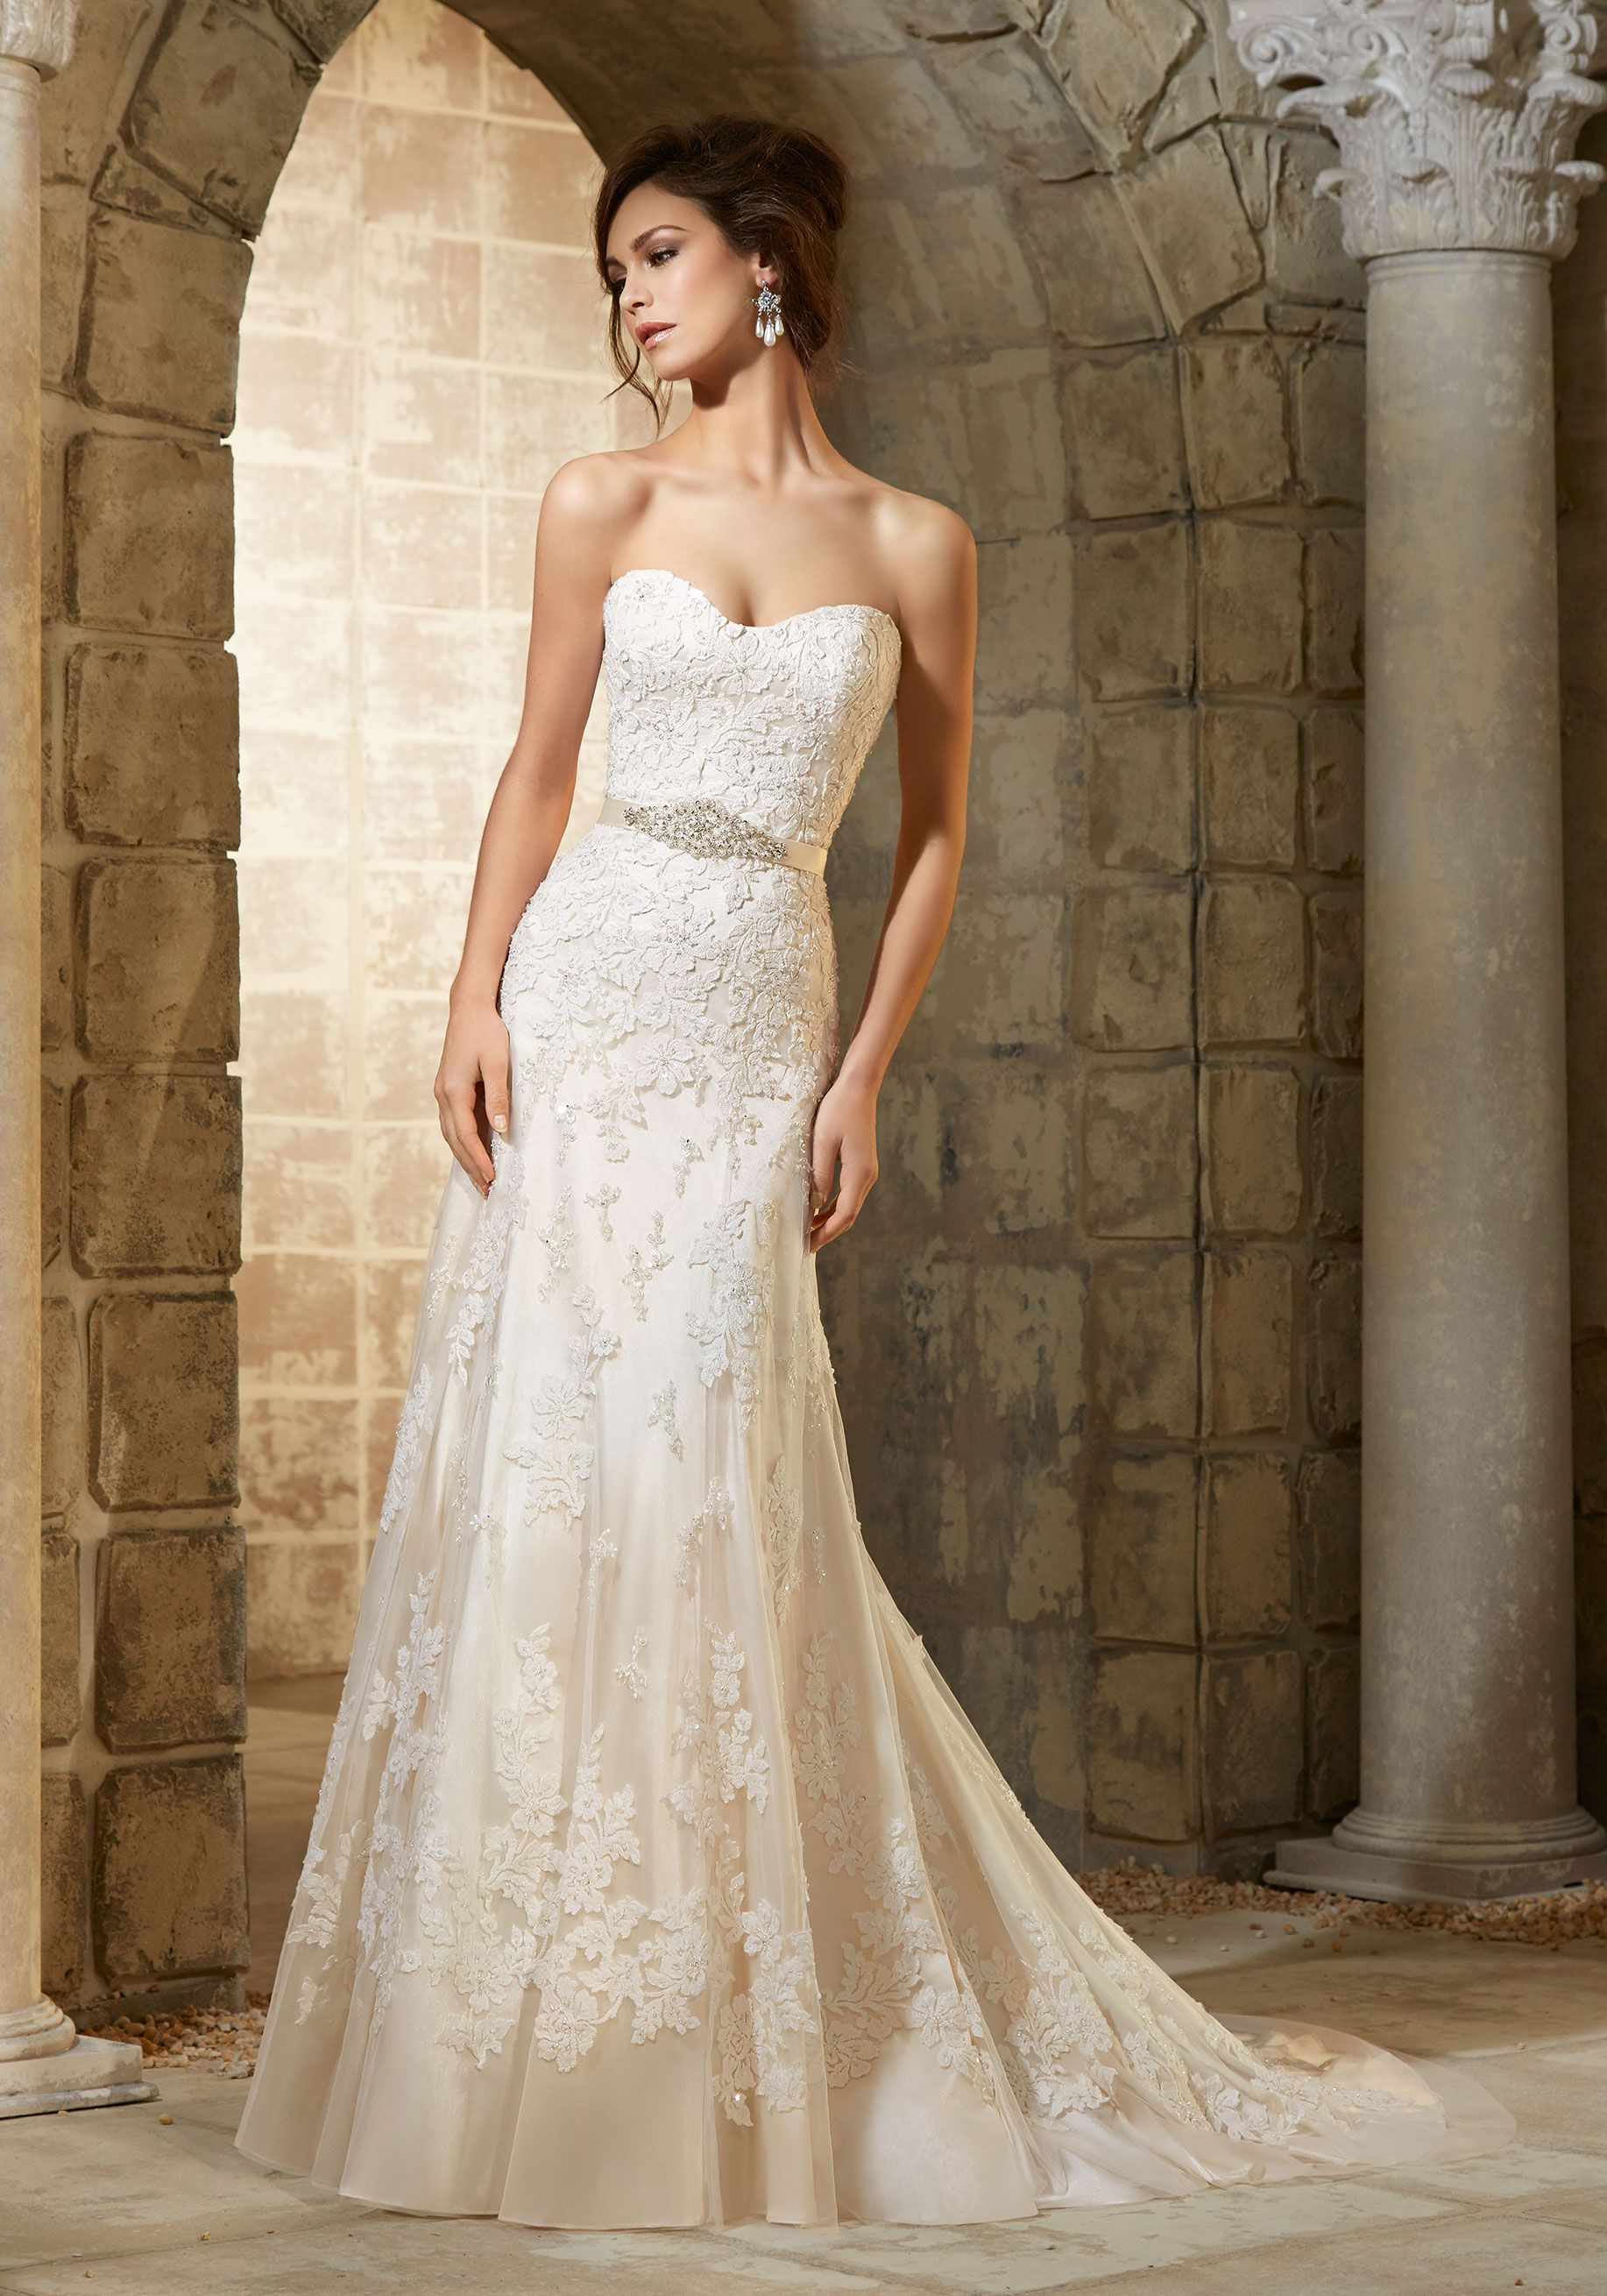 Wedding Dresses and Bridal Gowns by Morilee designed by Madeline Gardner. Delicate Beading on Embroidered Appliqués Mori Lee Bridal Wedding Dress